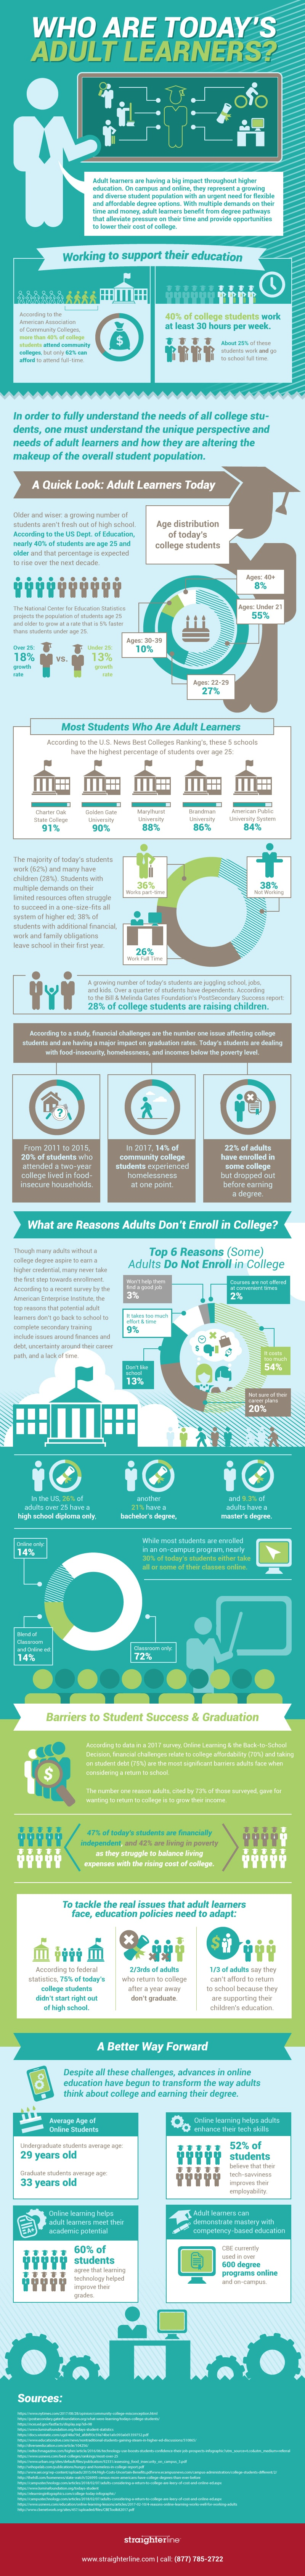 Who Are Today's Adult Learners? Infographic